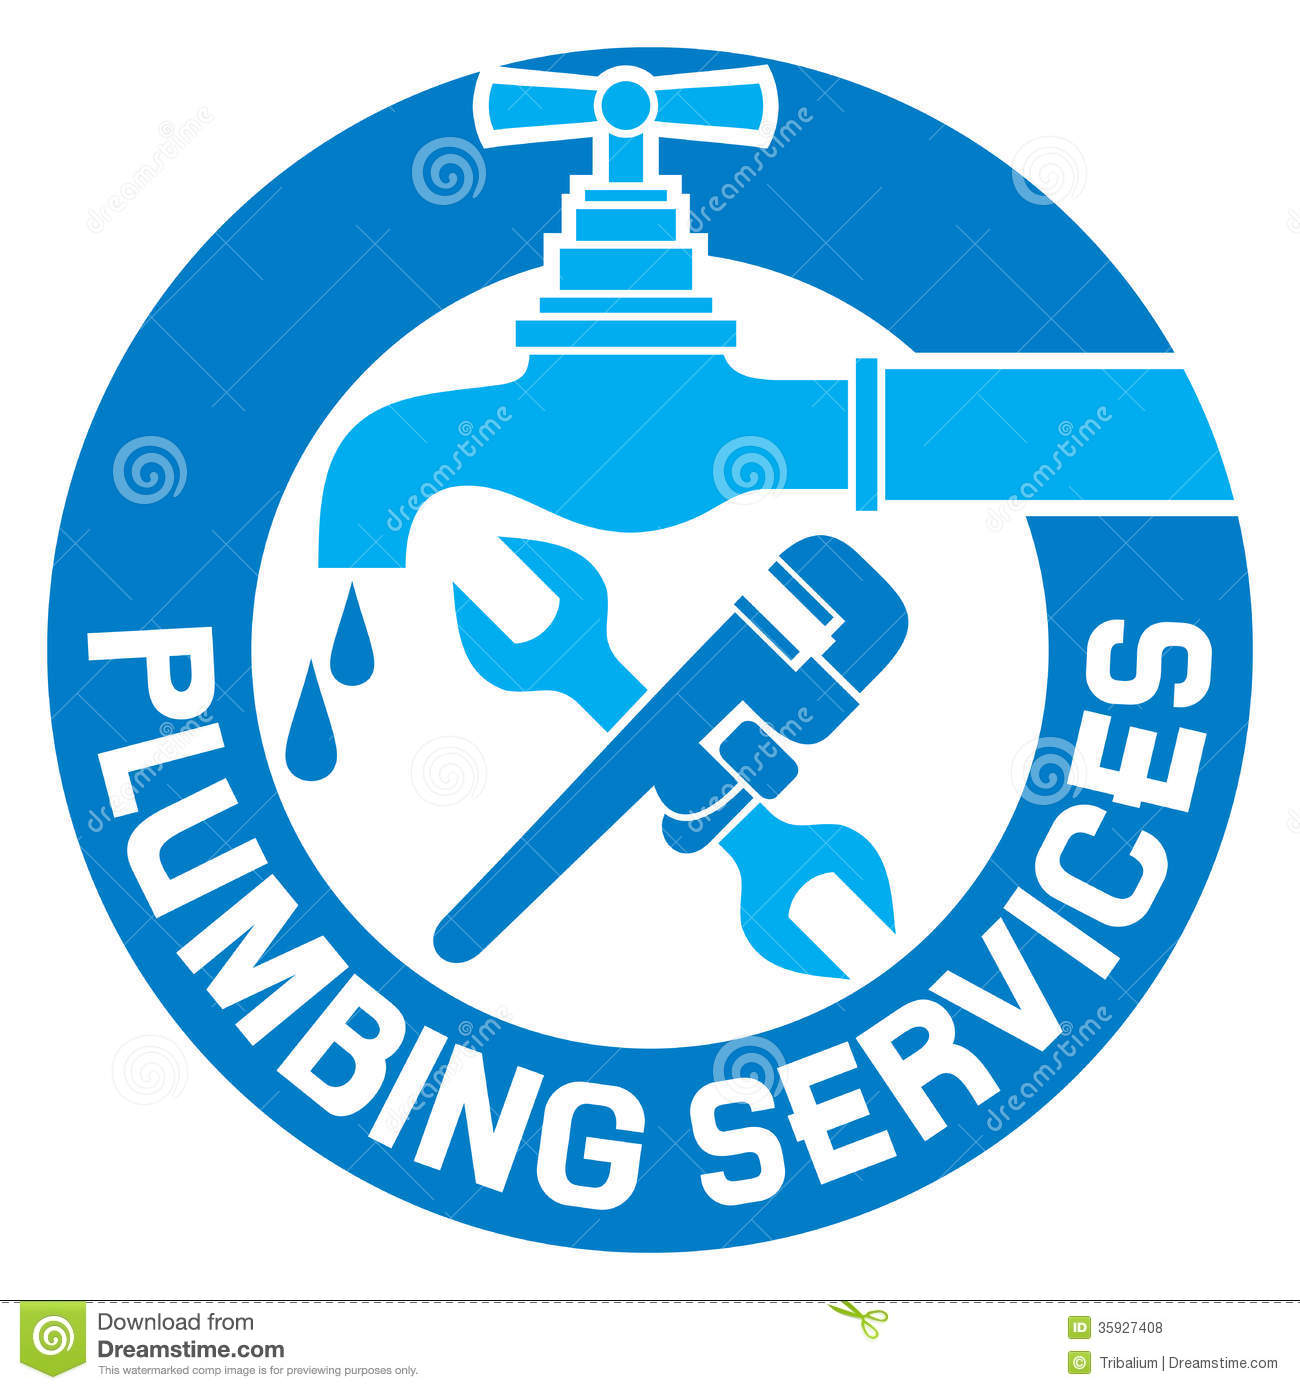 Plumbing pump icon clipart image library download Plumbing symbols clipart - ClipartFest image library download